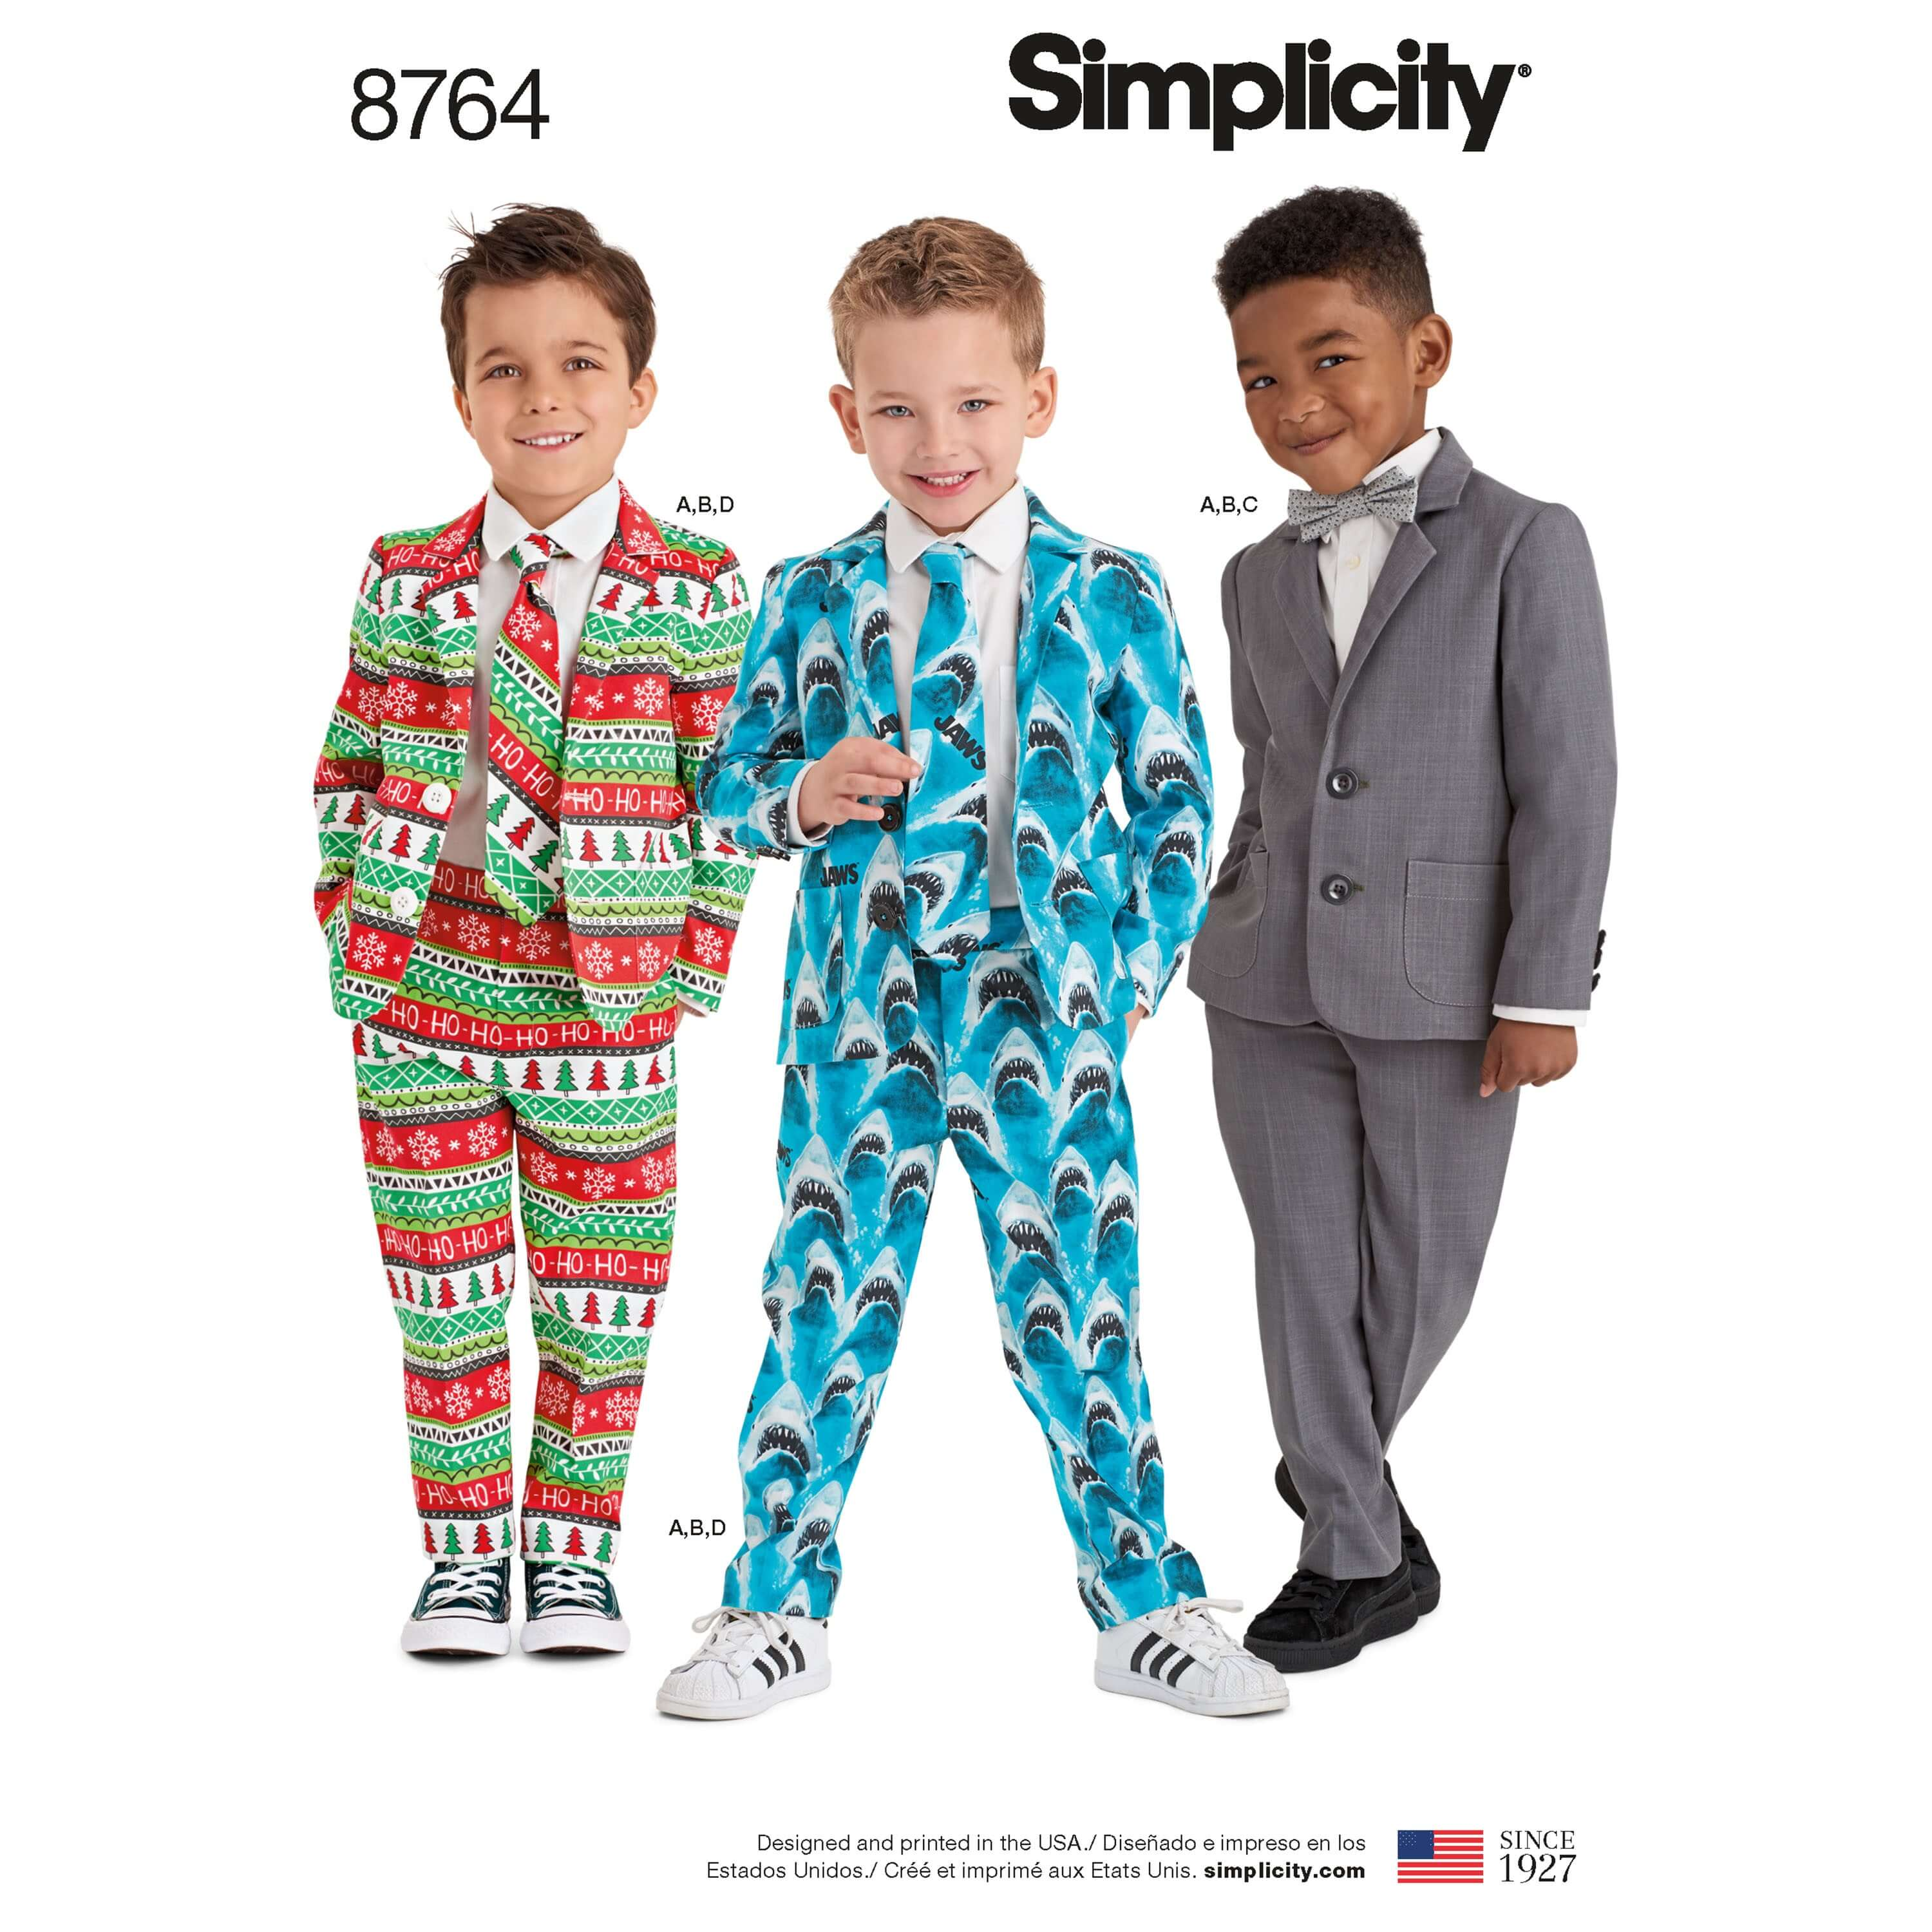 Simplicity Sewing Pattern 8764 Boy's Special Occasion Suits and Ties